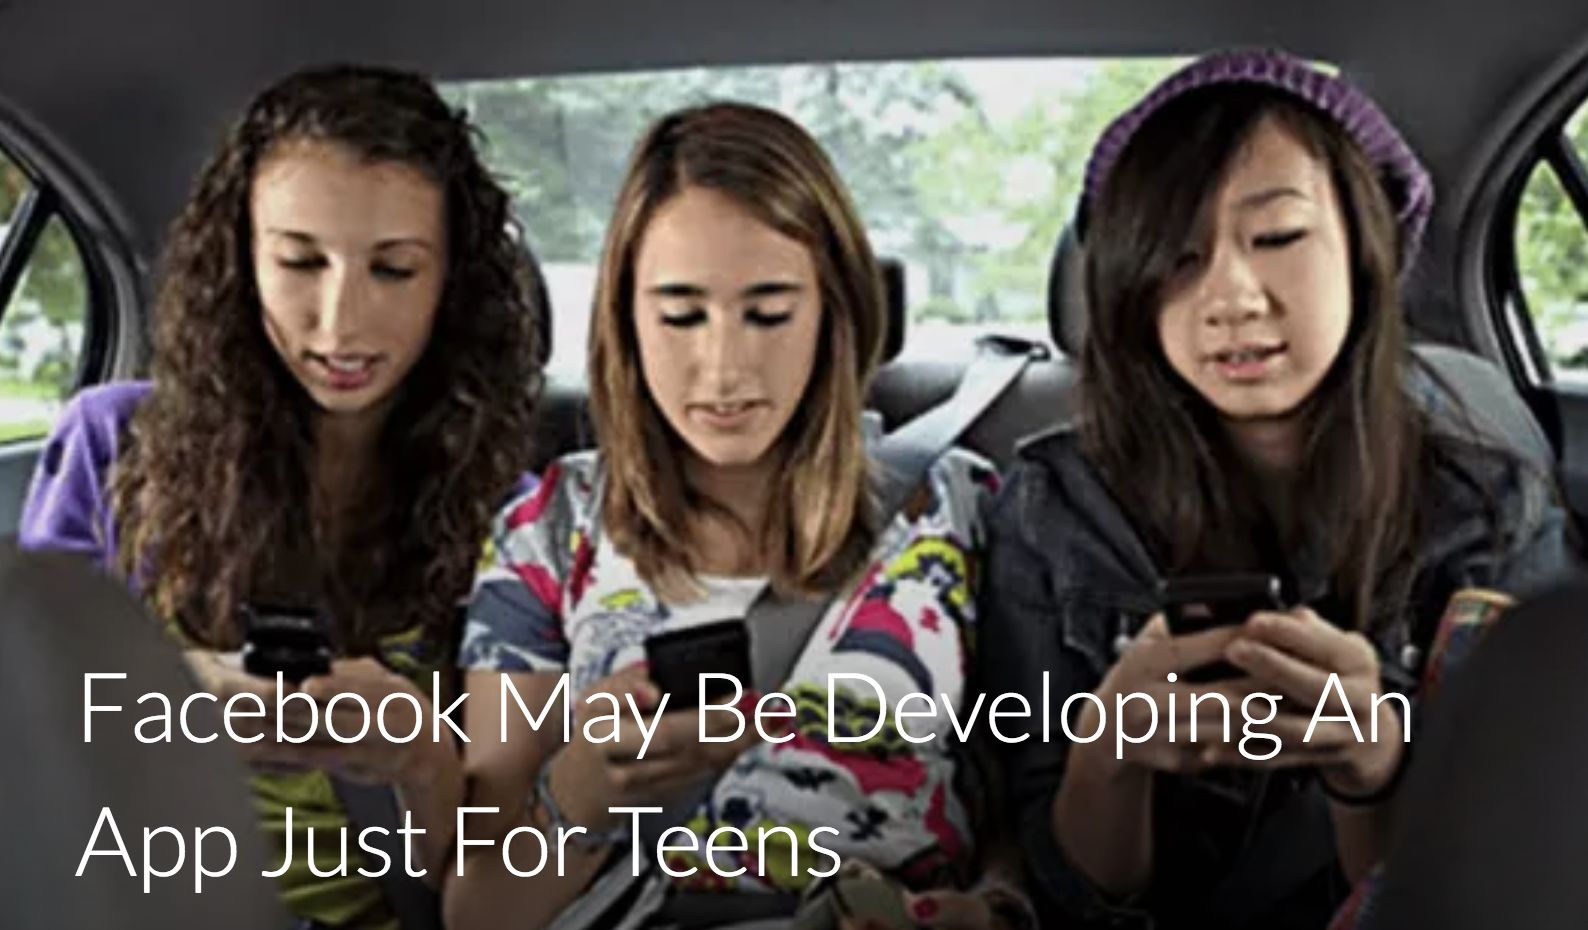 Facebook May Be Developing An App Just For Teens